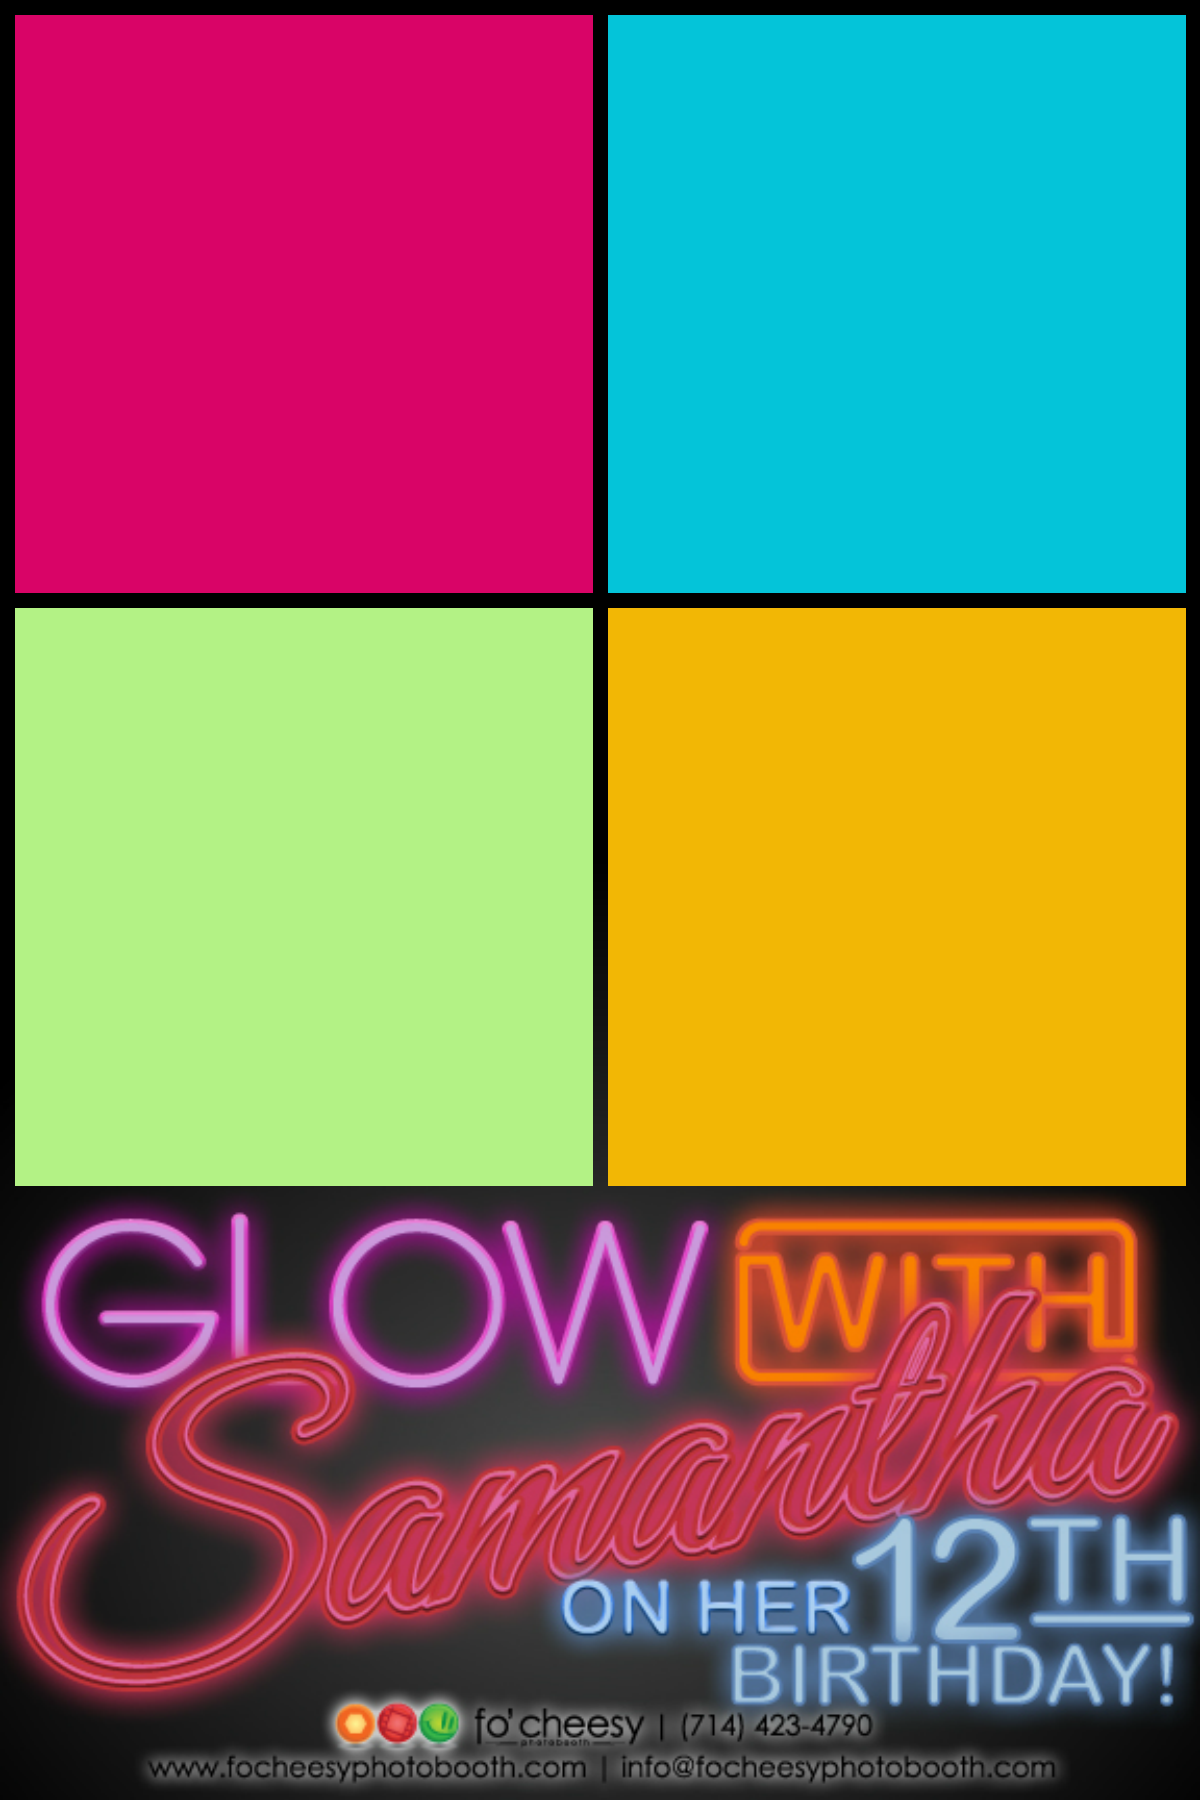 Glow in the Dark Photobooth Layout, photo booth | Layout Design ...